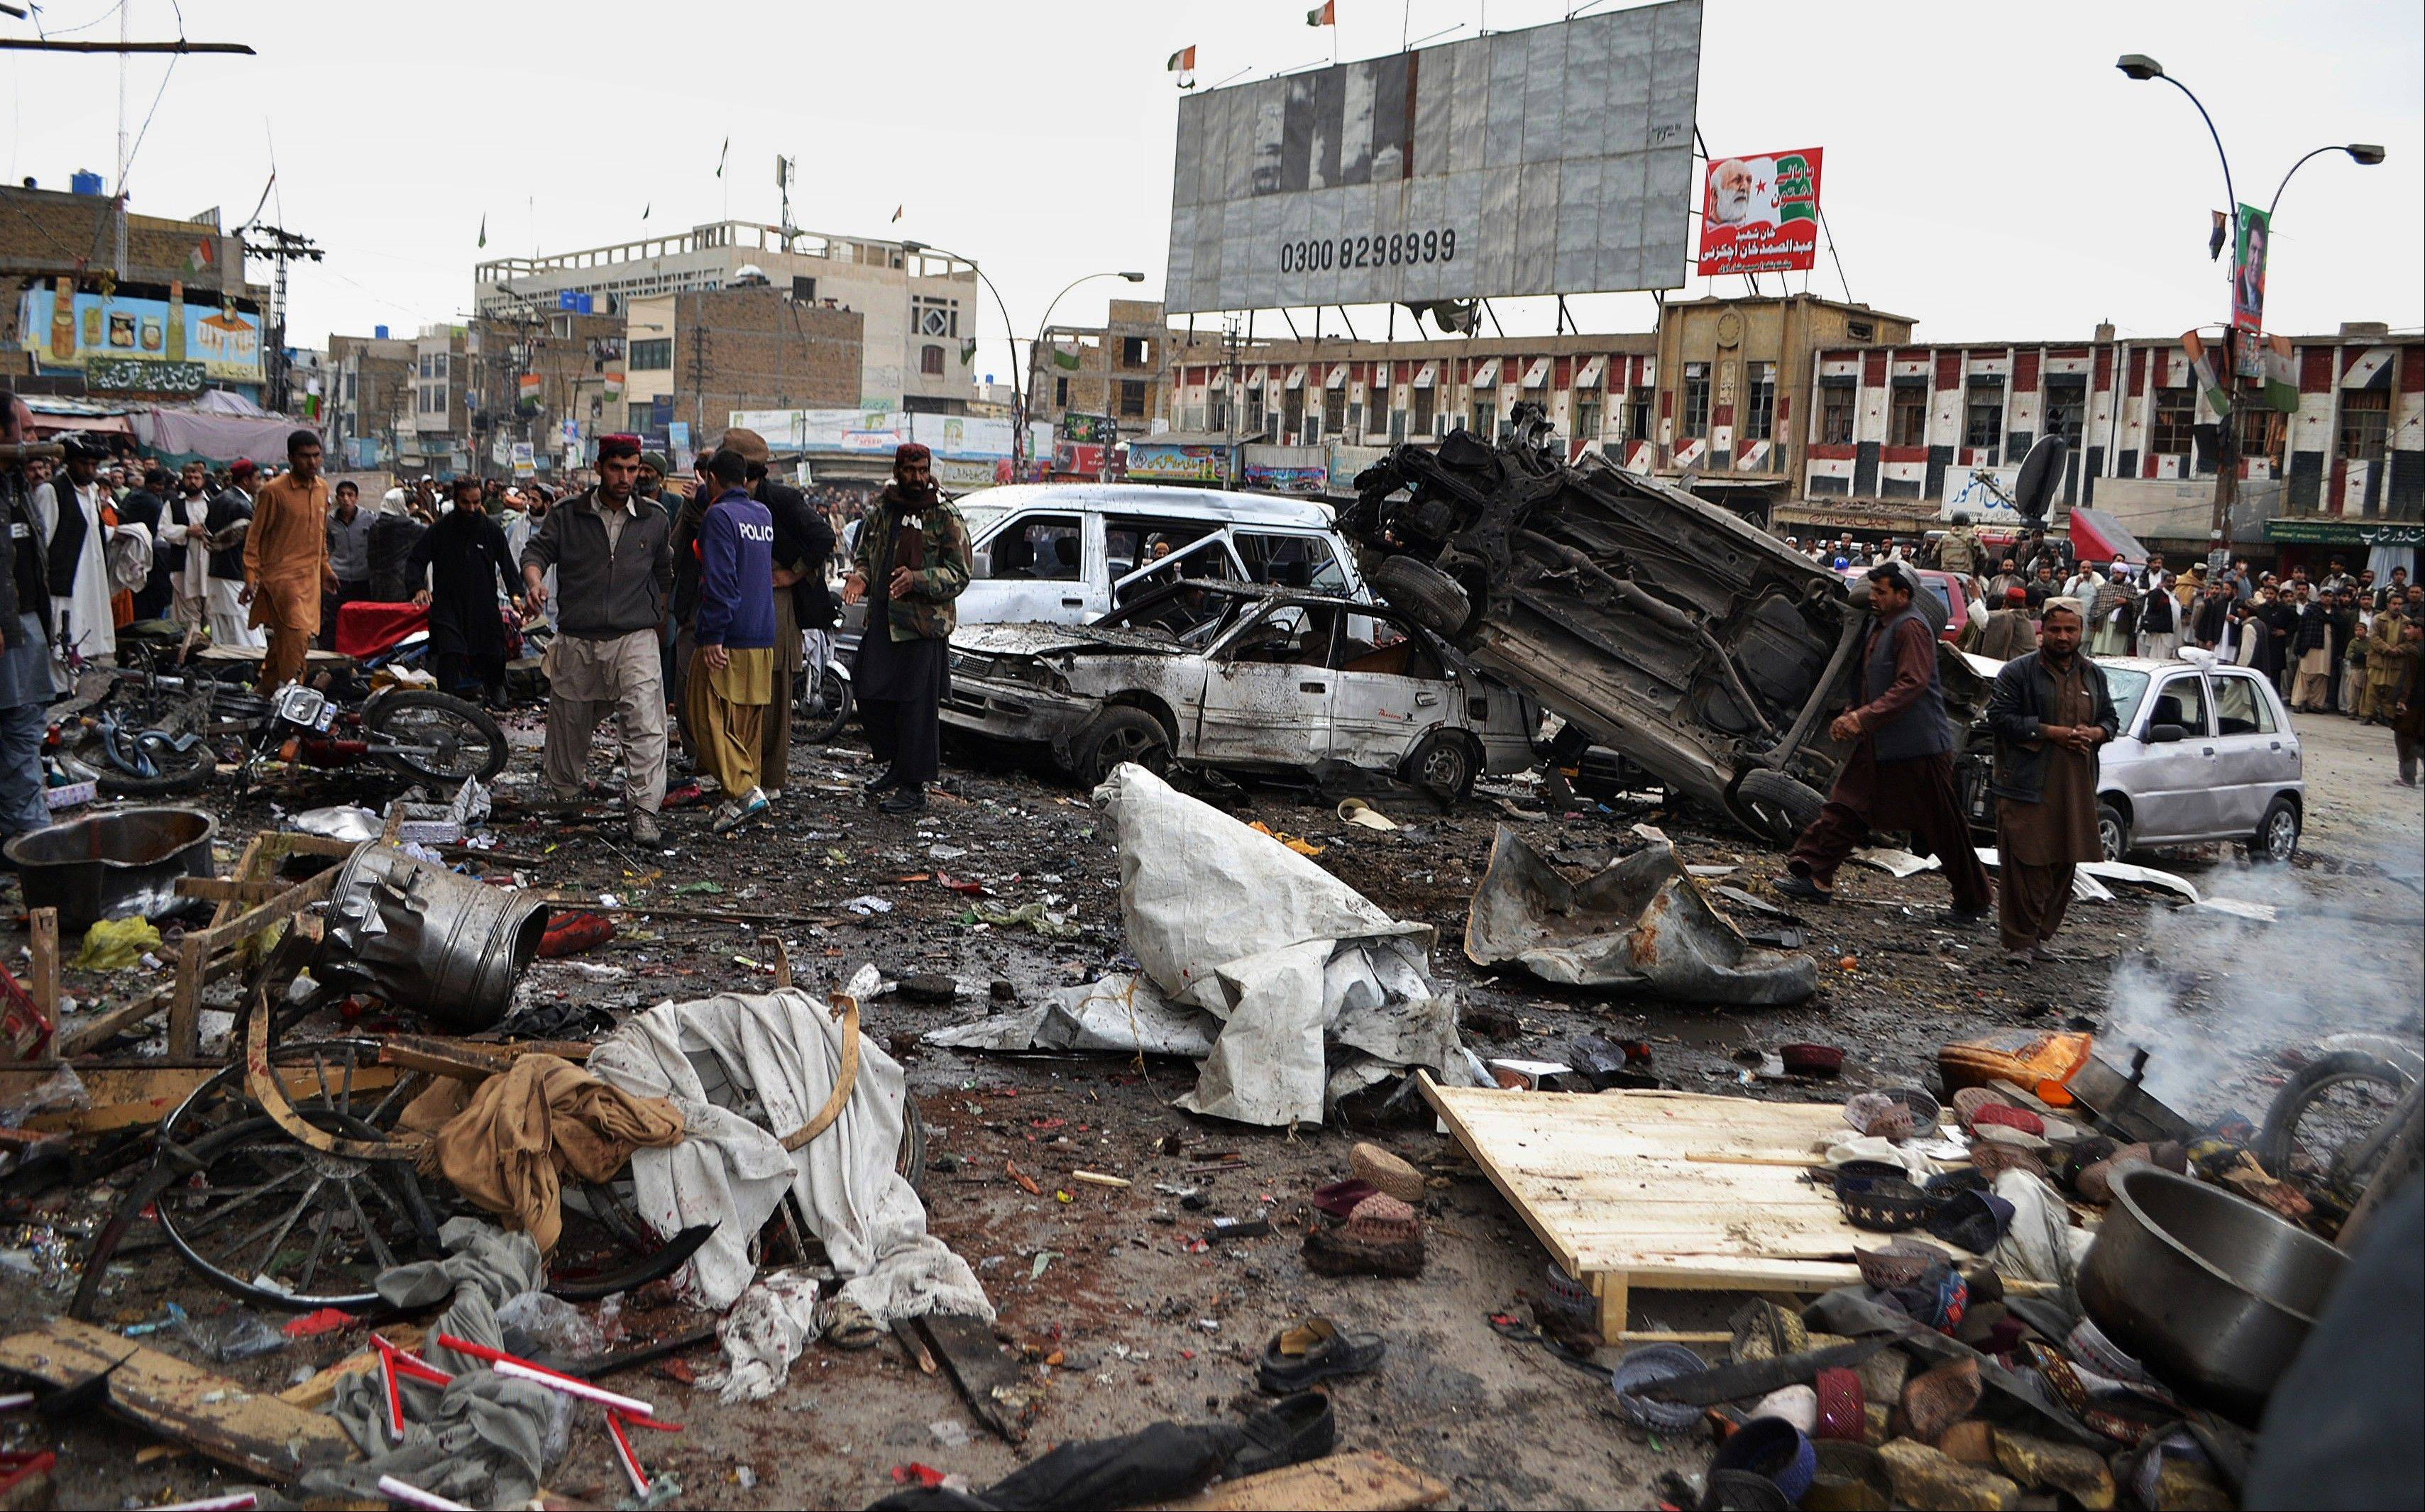 Pakistani police officers and local residents gather at the site of a bomb blast that targeted paramilitary soldiers in a commercial area in Quetta, Pakistan, killing at least 12 people and wounding more than 40 others, according to police, Thursday.